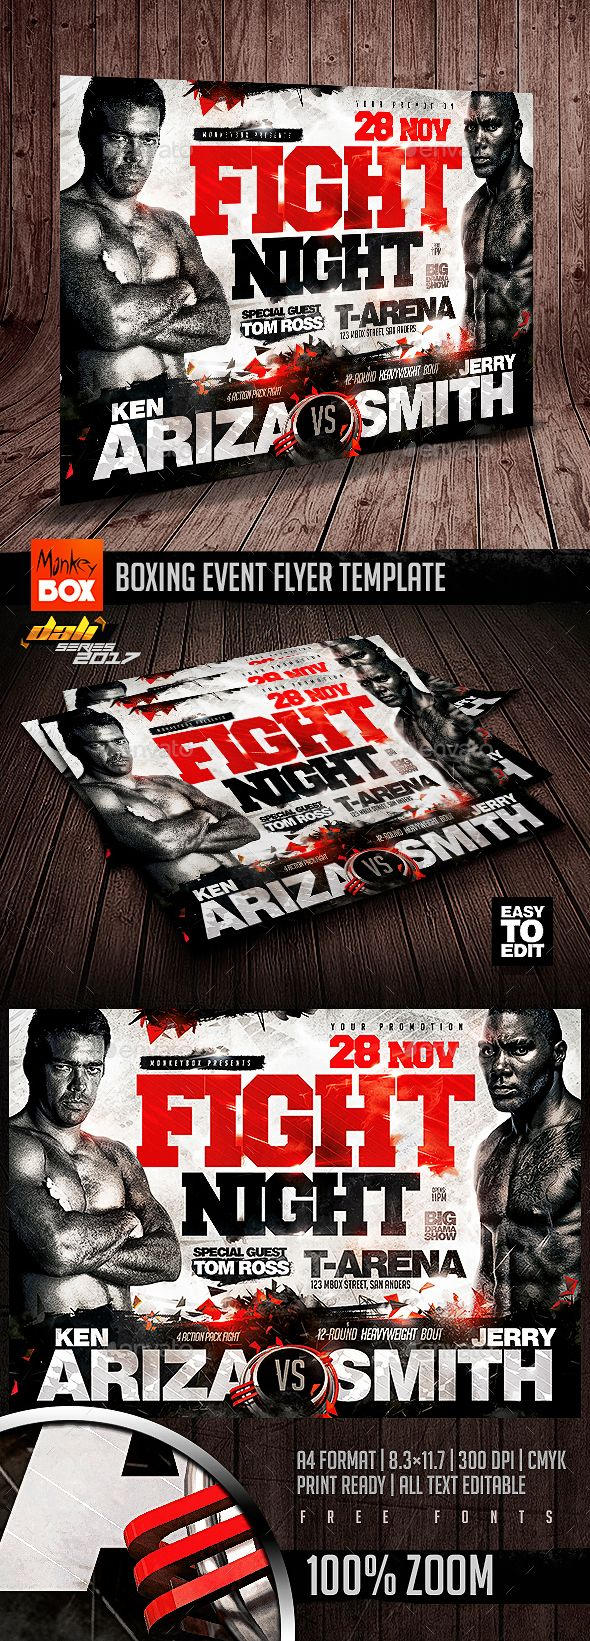 Flyer Samples For An Event Boxing Event Flyer Template  Pinterest  Event Flyer Templates .